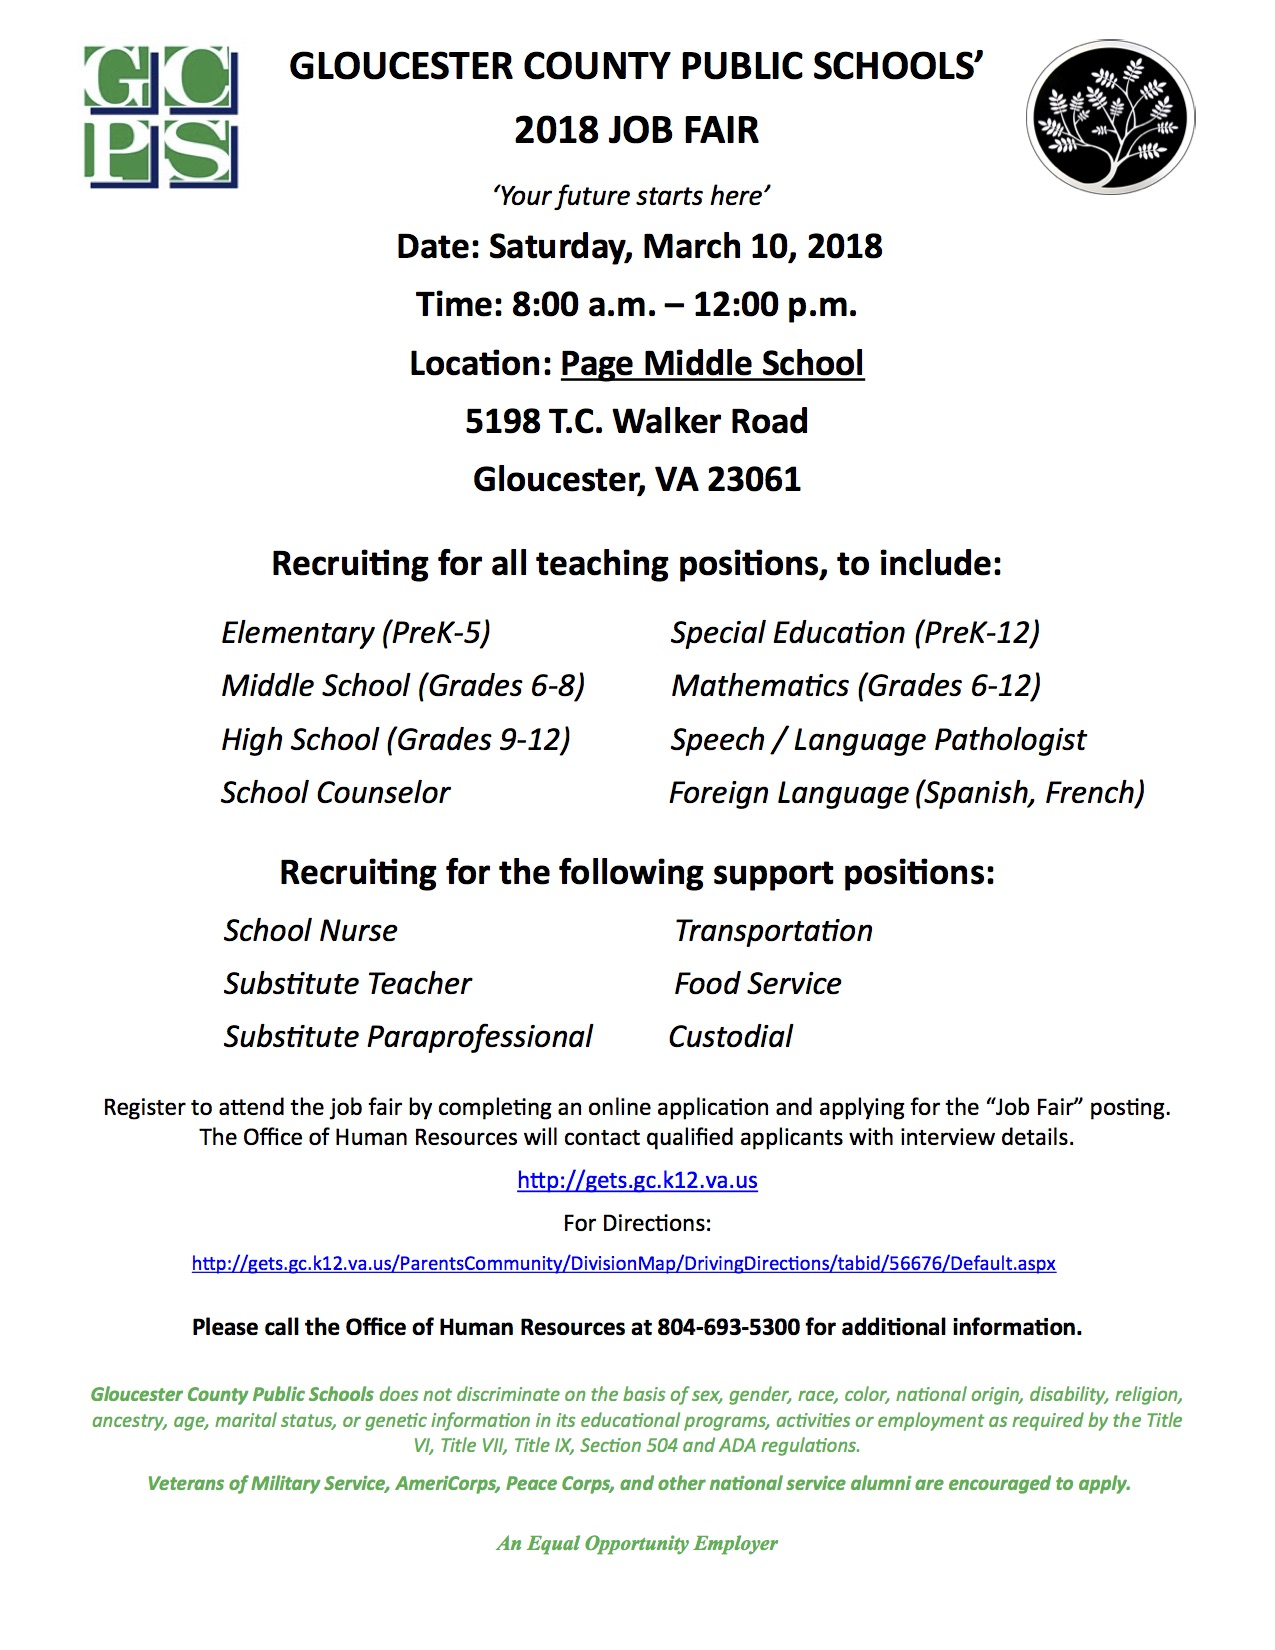 GLOUCESTER COUNTY PUBLIC SCHOOLS' 2018 JOB FAIR